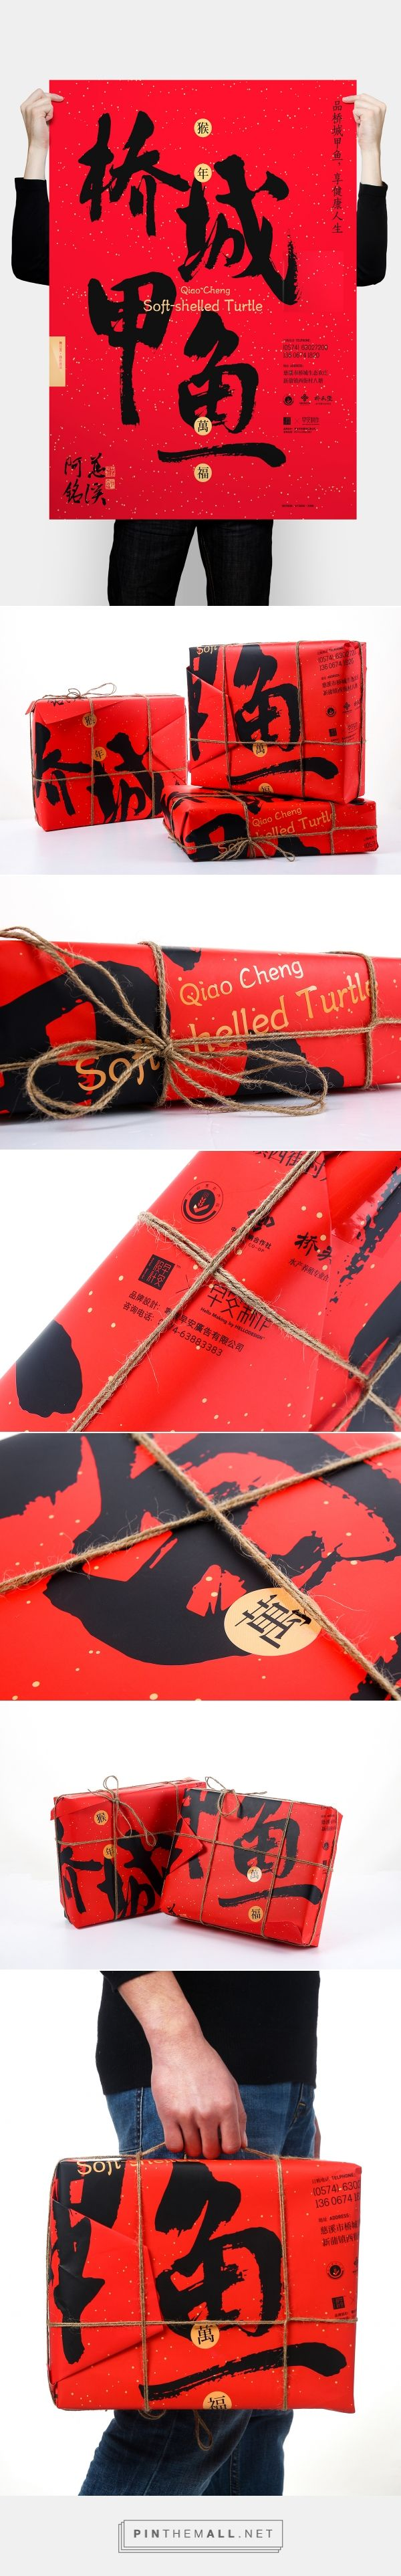 橋城甲魚新年裝 Packaging Design of Spring Festival on Behance by WANGZHONG SHI Ningbo, China curated by Packaging Diva PD. Design of qiaocheng soft-shelled turtle, use an calligraphy posters to pack soft-shelled turtle, covers the most sincere heart to convey simple emotions and wishes for the new year.